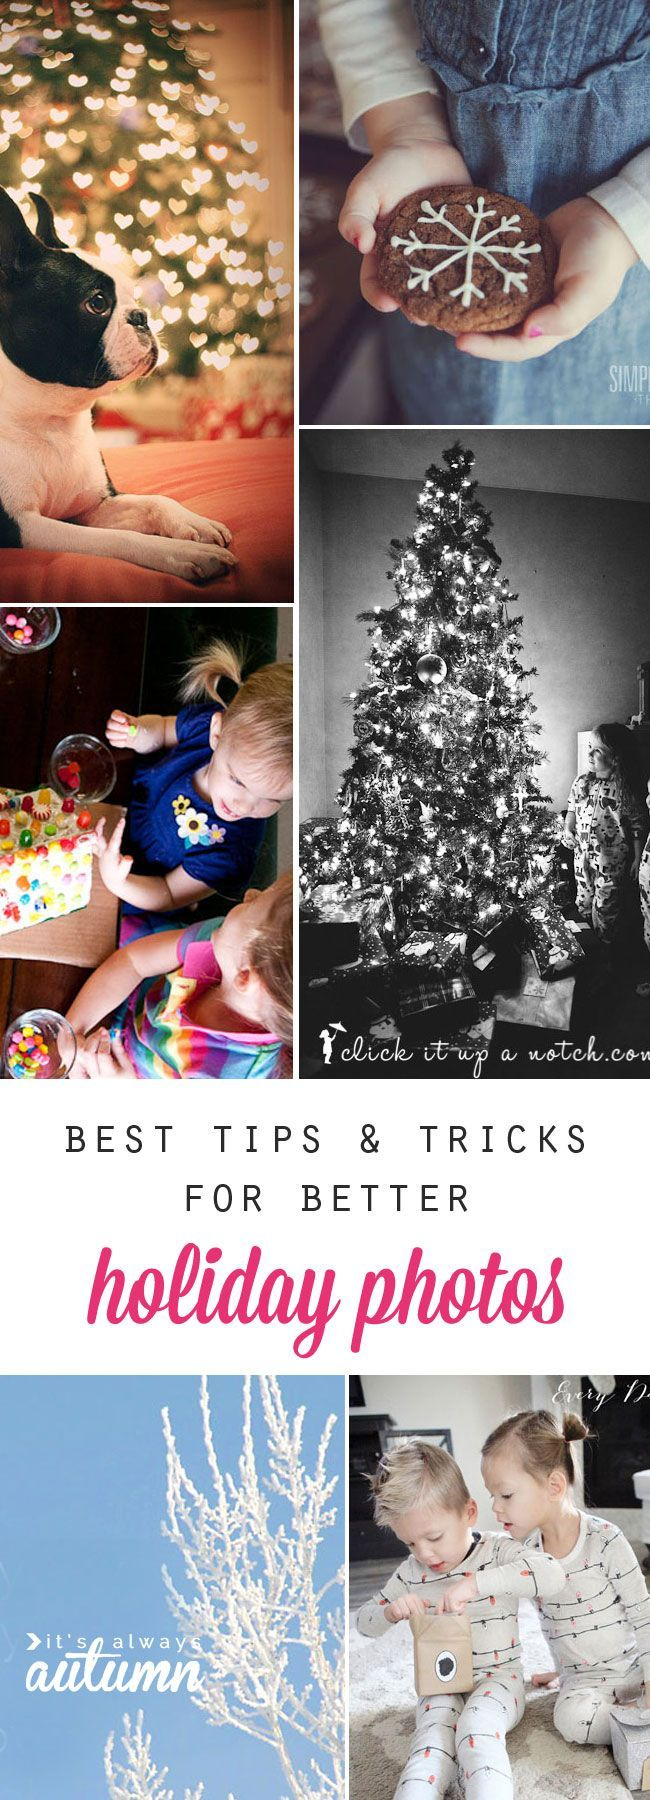 how to get better holiday photos - great tips & tricks on everything from Christmas morning to snowy day photos to Christmas tree bokeh and more!